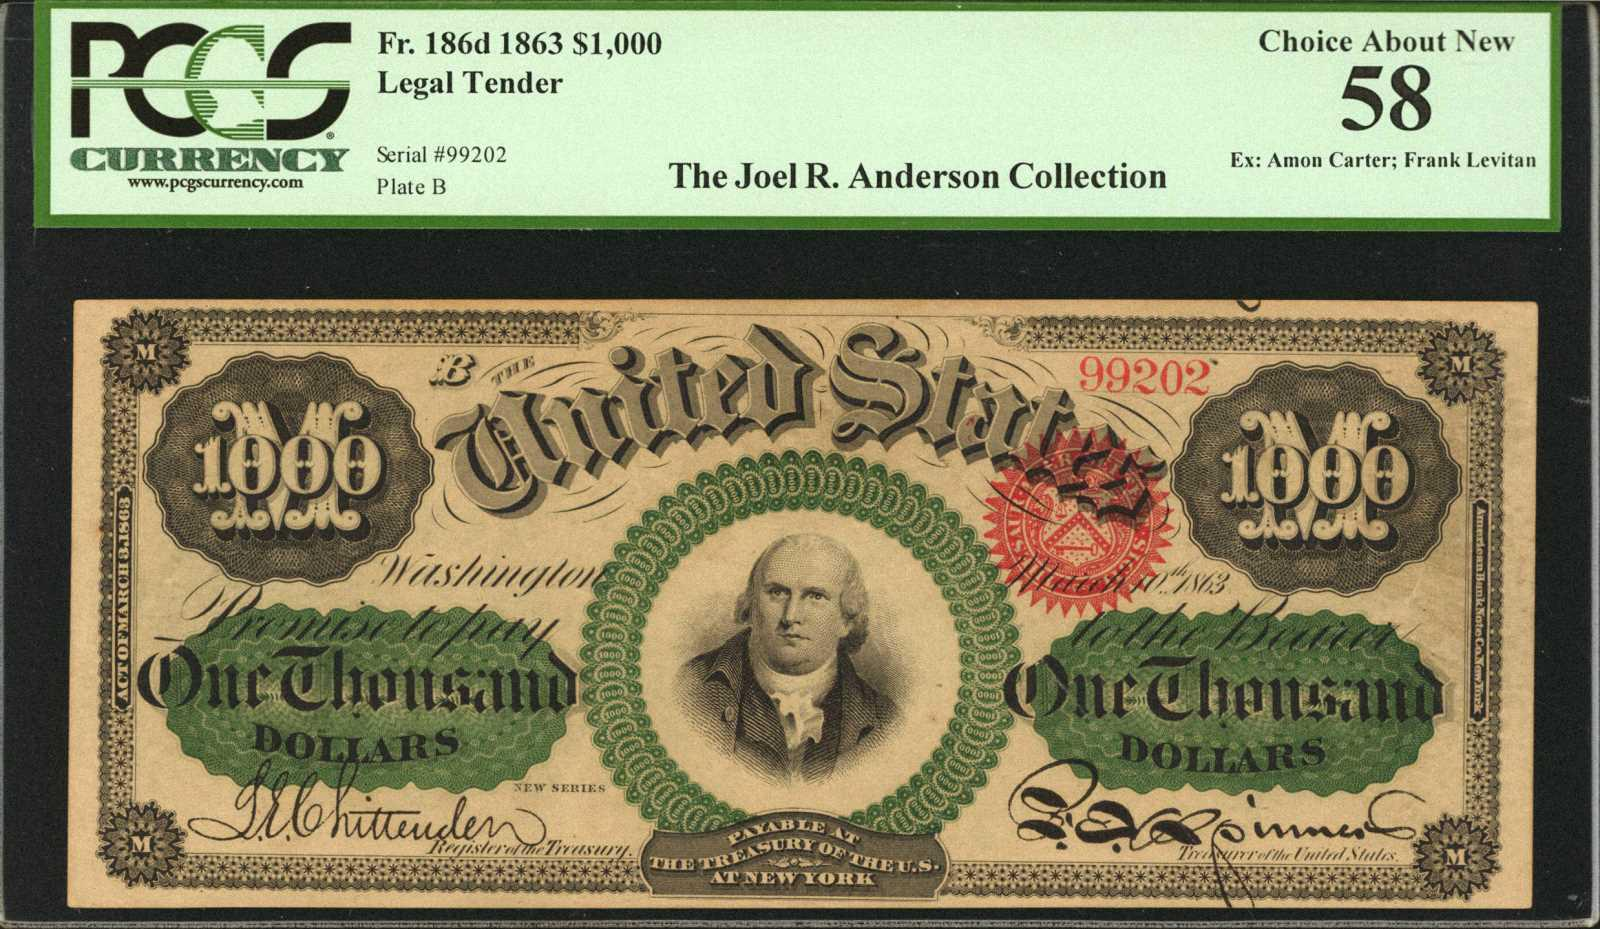 Rare 1863 1 000 Bill From The Joel R Anderson Collection S For 960 At Baltimore Expo